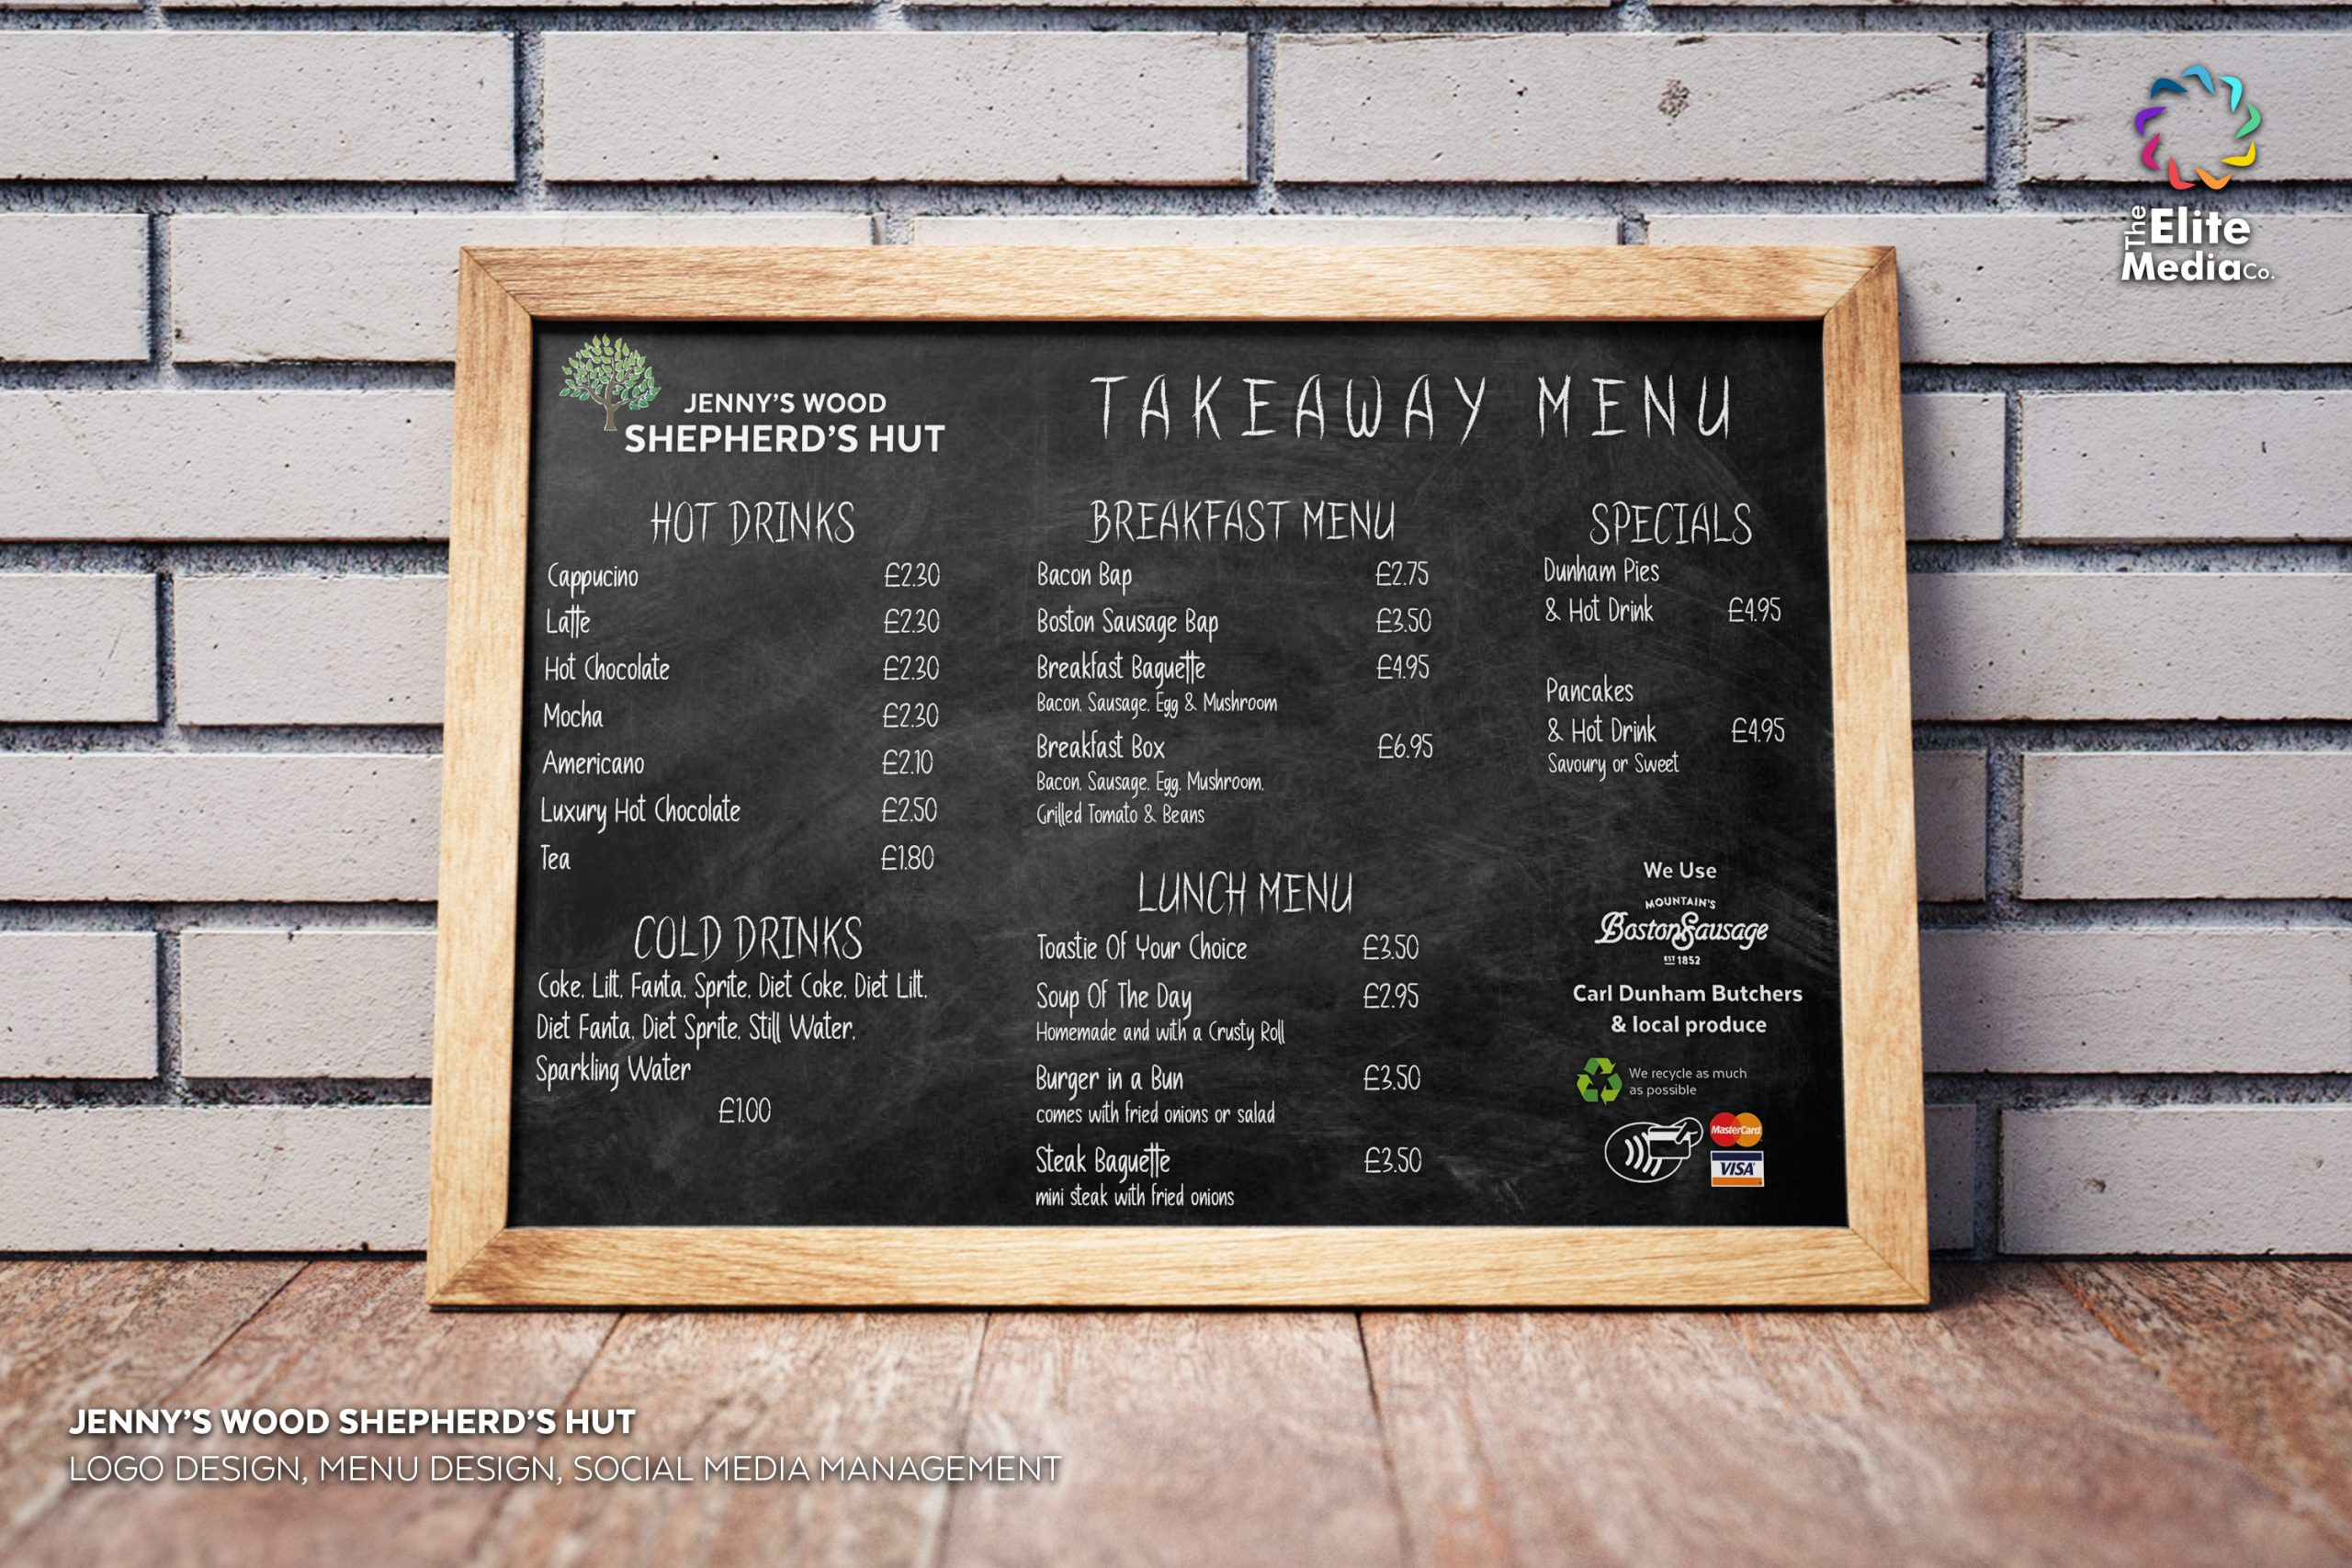 Jenny's Woods Shepherd's Hut – Menu